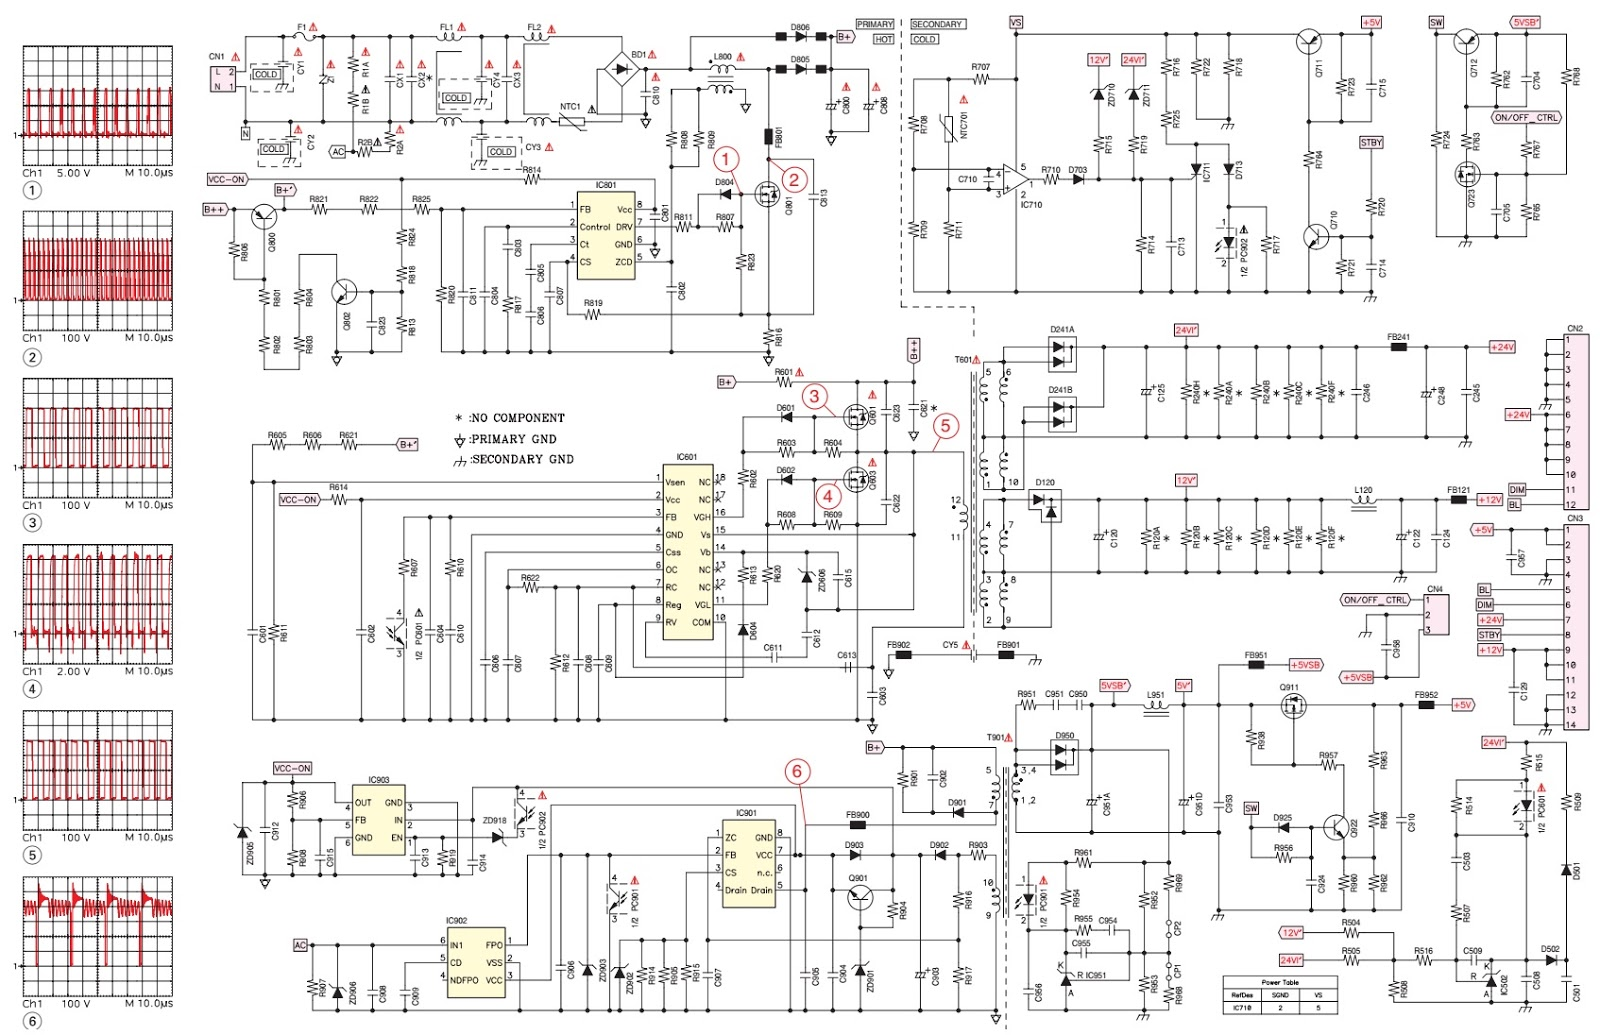 hight resolution of grundig lcd tv smps circuit diagram dps 145pp 133 electro help inverter pcb board circuit diagram inverter pcb board circuit diagram